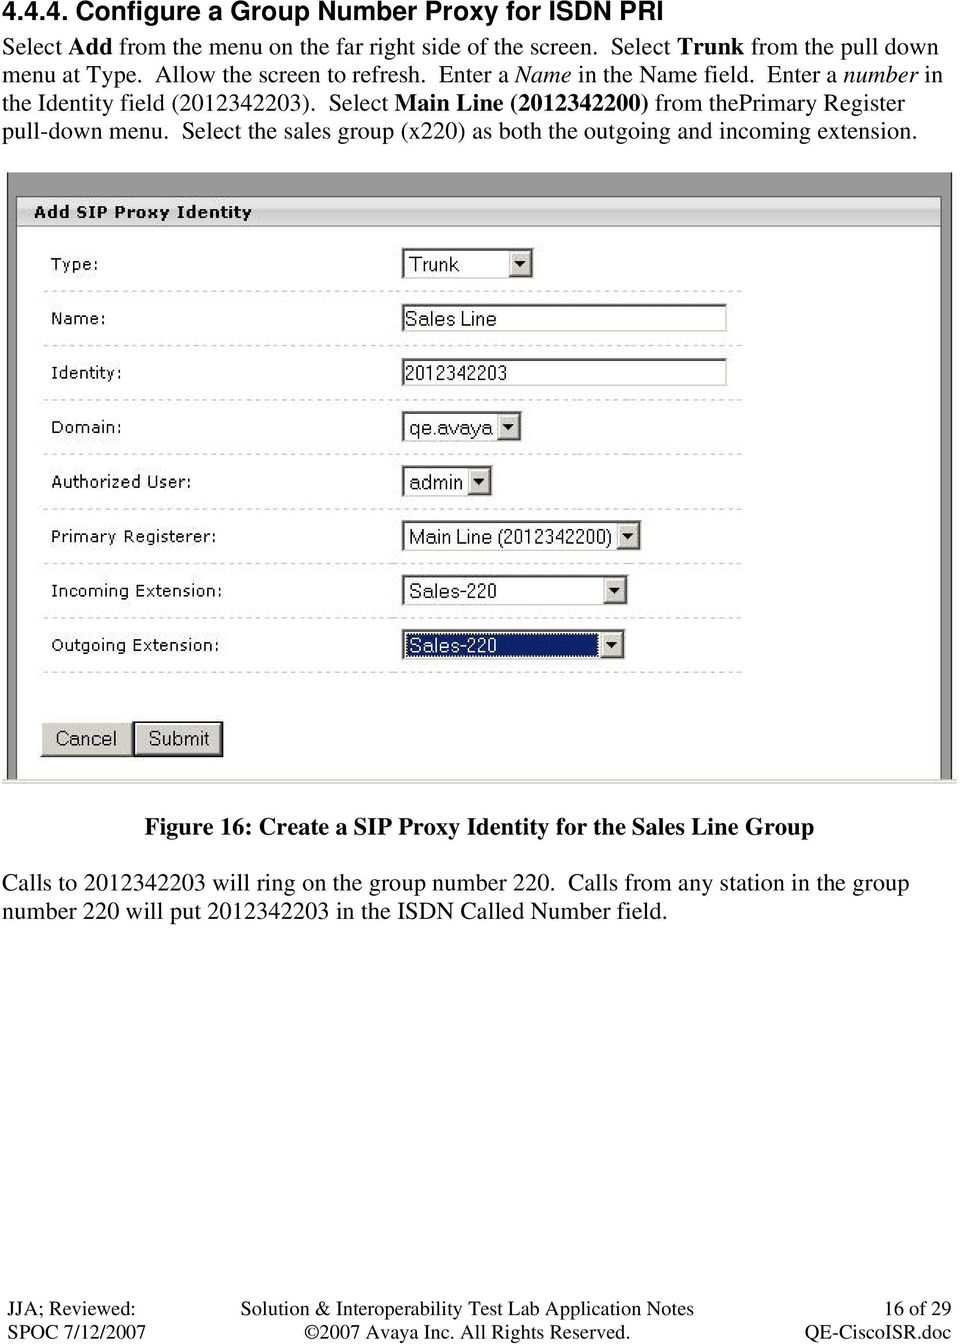 Select Main Line (2012342200) from theprimary Register pull-down menu. Select the sales group (x220) as both the outgoing and incoming extension.